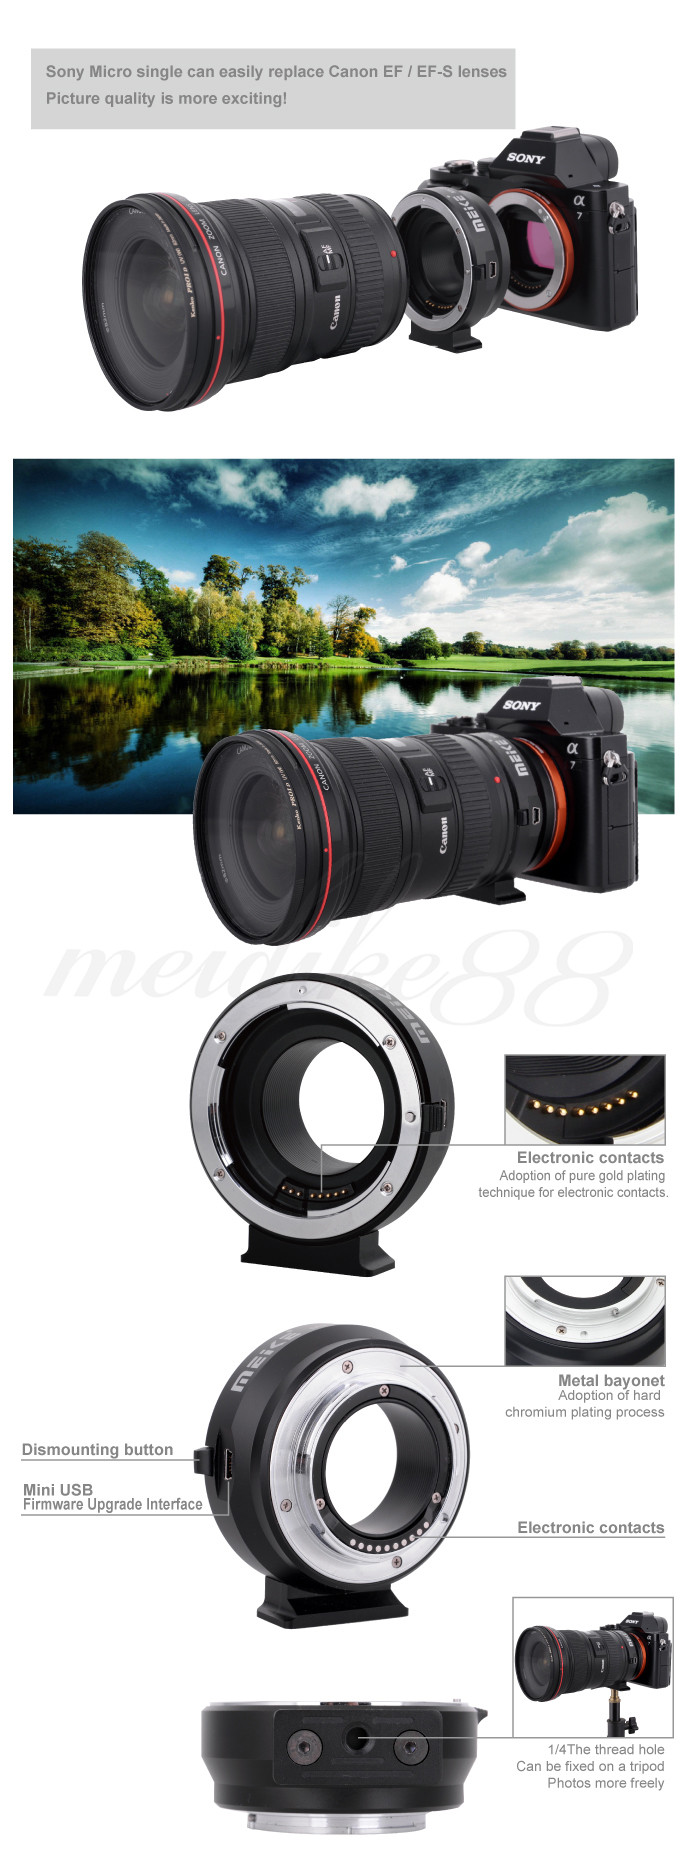 MK-S-AF4 Auto Focus mount lens adapter ring for SONY micro single camera to Canon EFEF-S Lens (3)